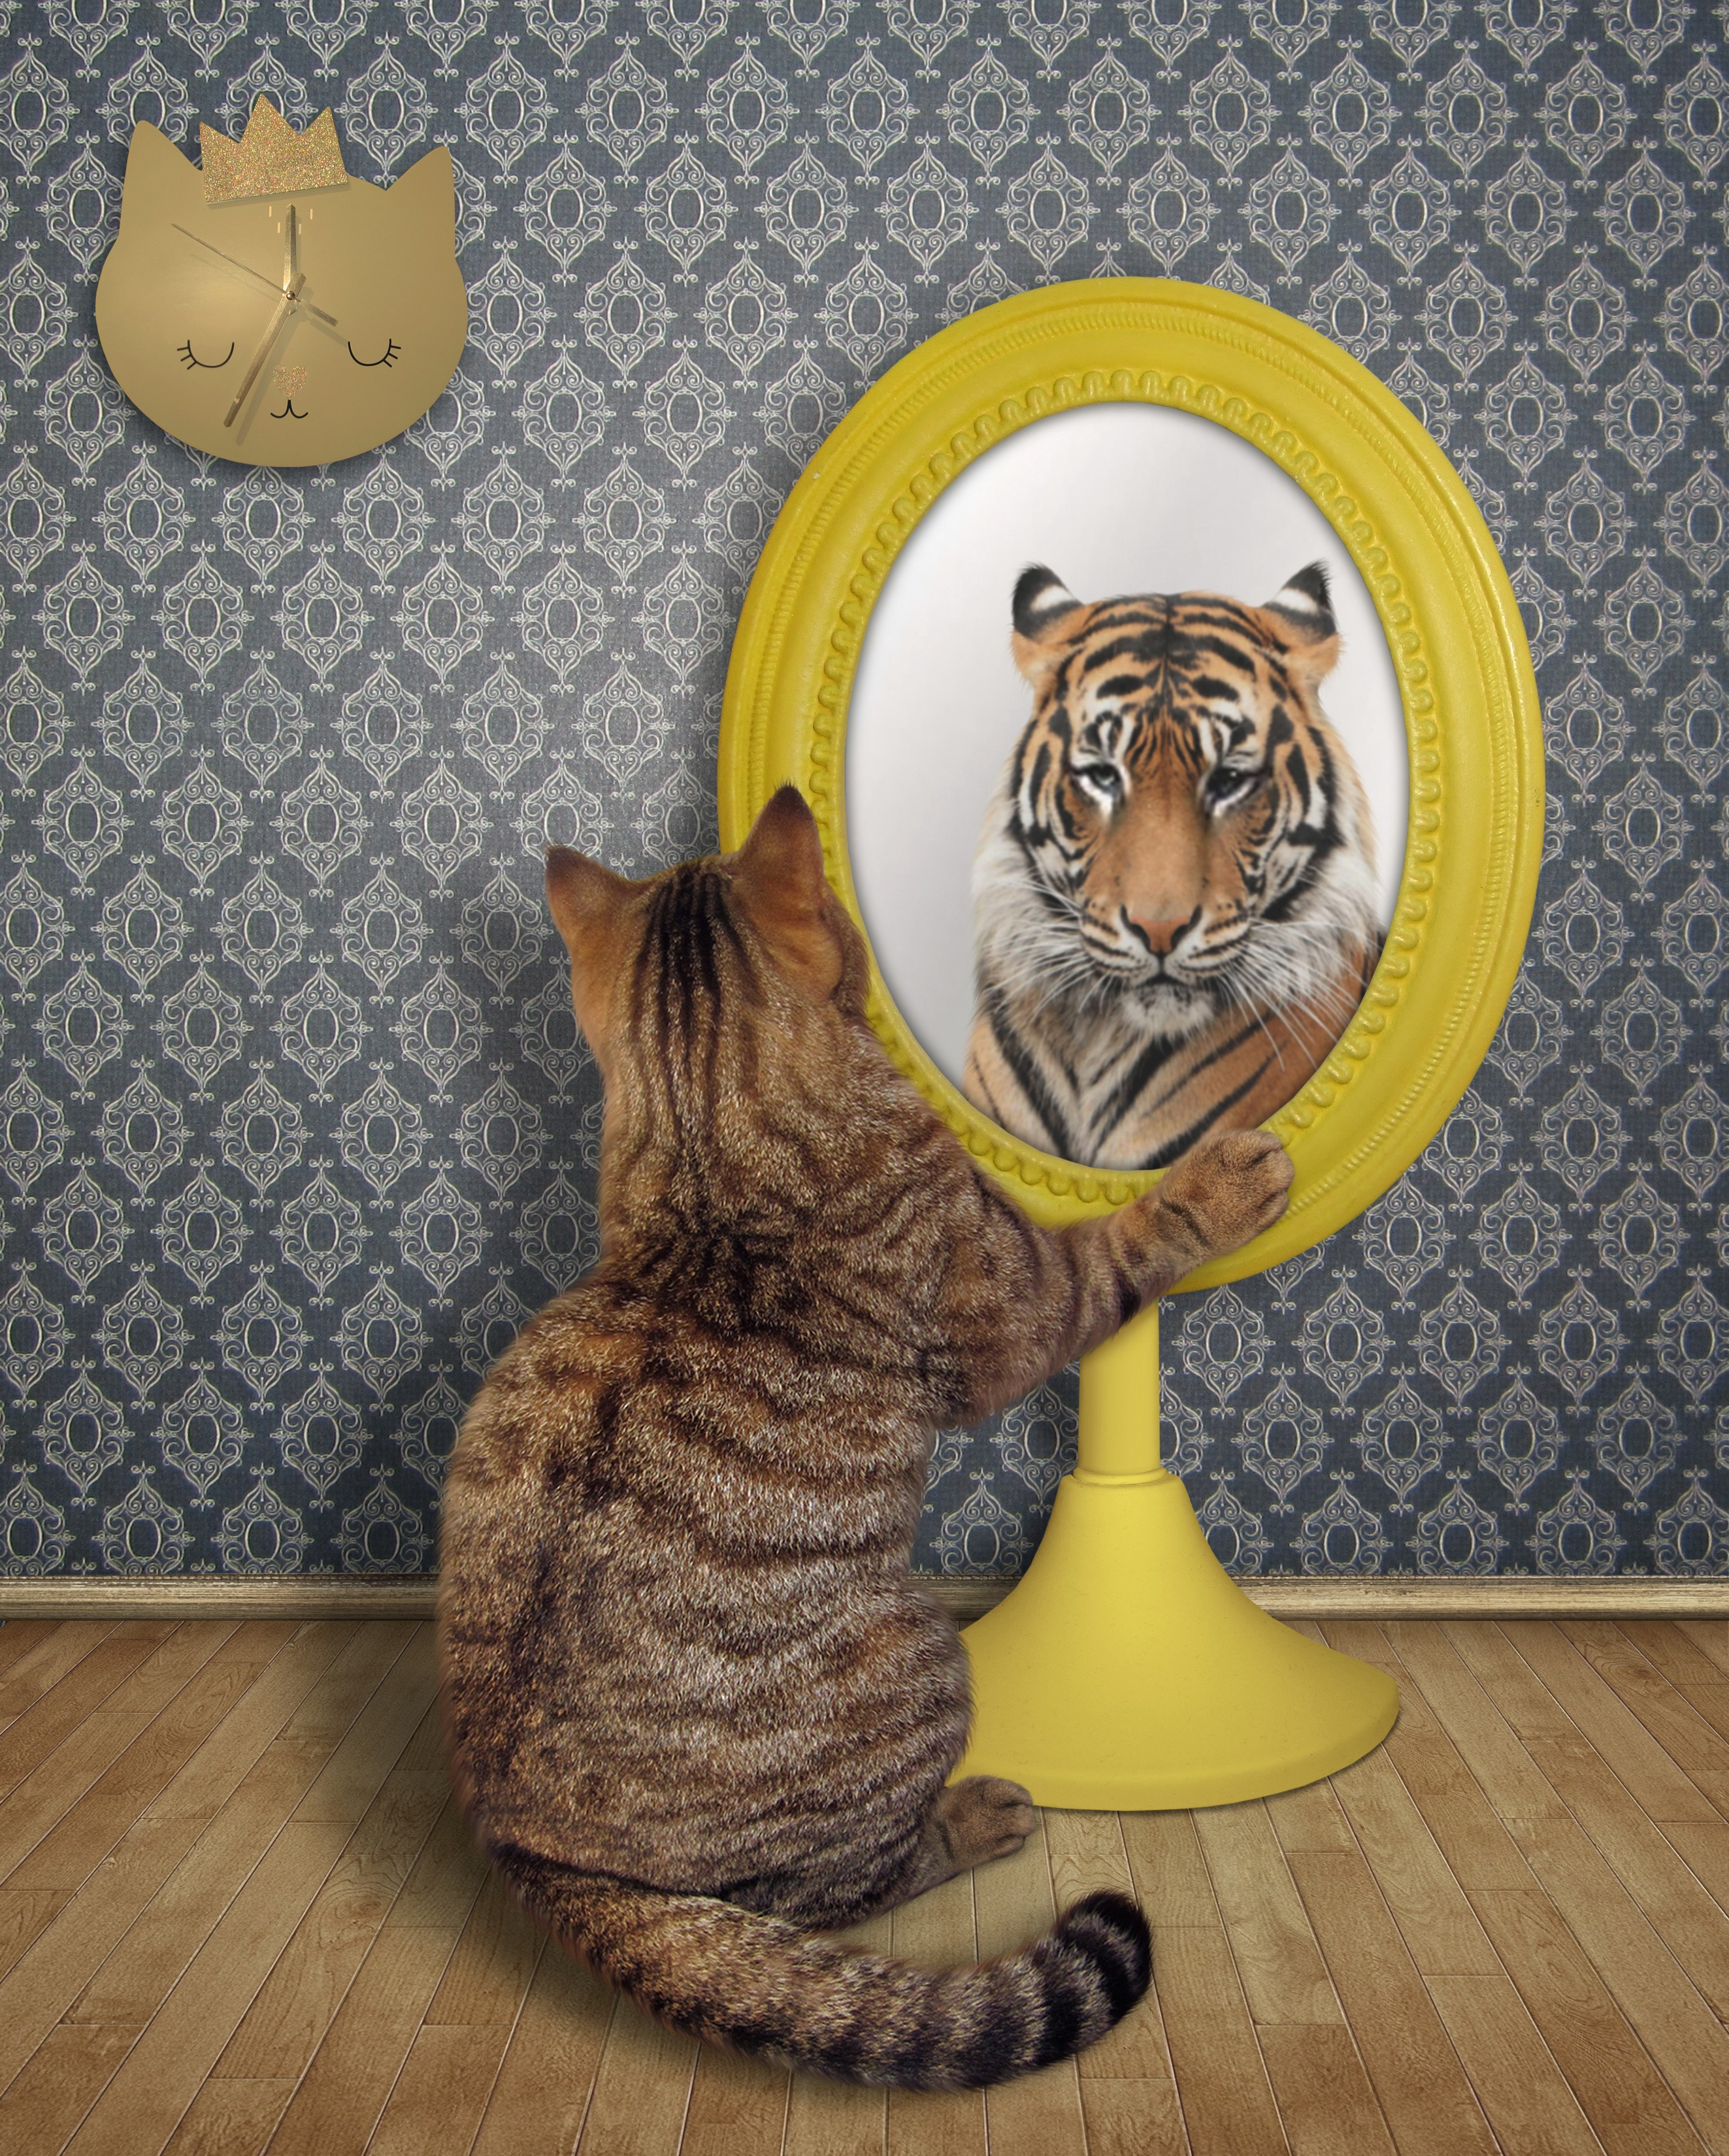 Cat looking into a mirror, seeing a tiger back in the reflection